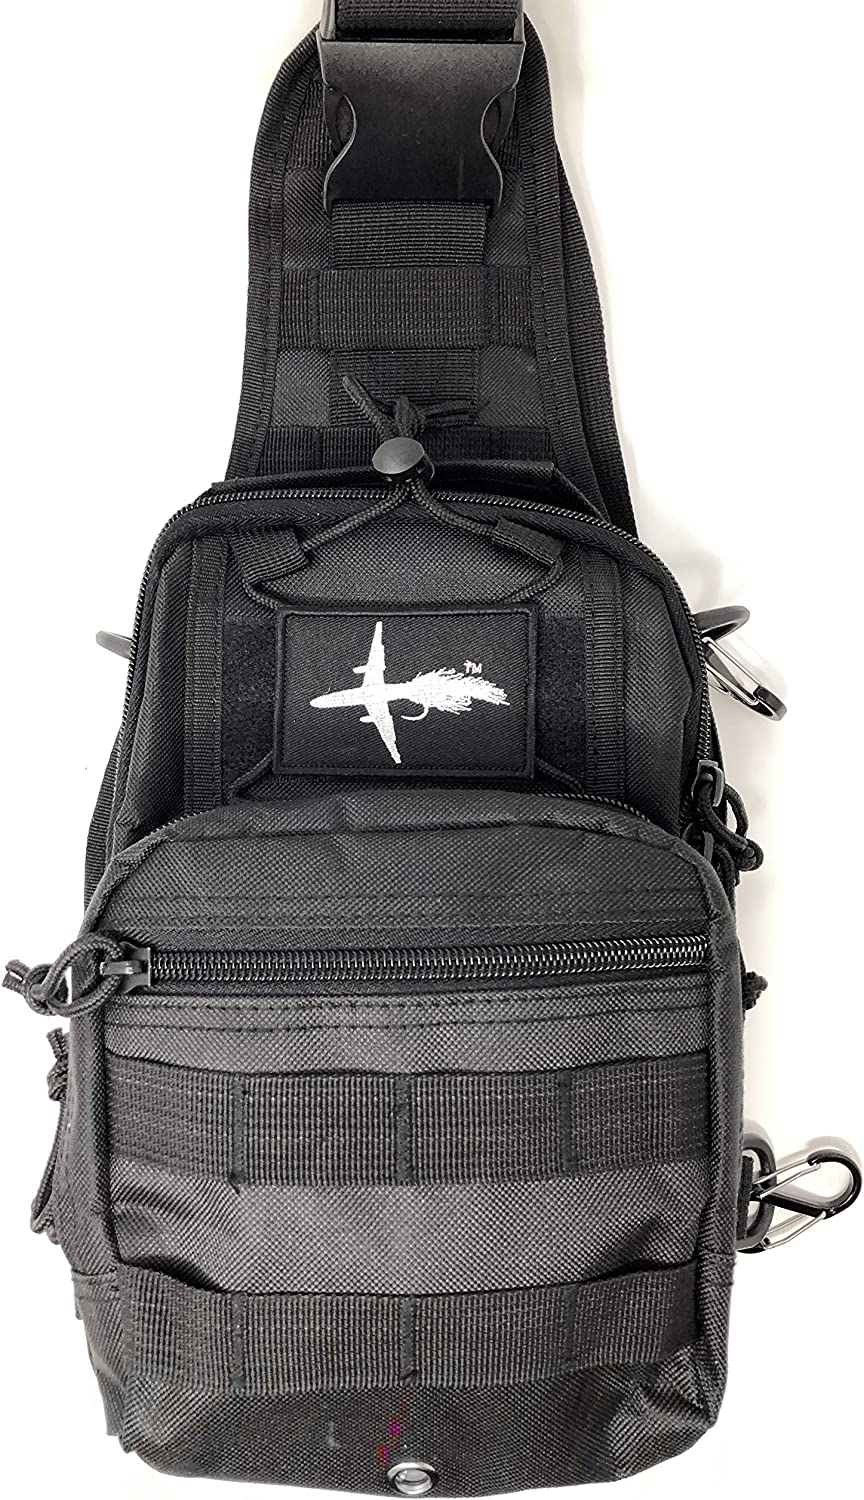 El Bolso Fly Fishing Sling Pack Available Loaded with Files, Tools, Accessories or Unloaded Tactical Fishing Pack The Perfect Size Bag for Fly Fishing Super Simple Yet Functional Durable